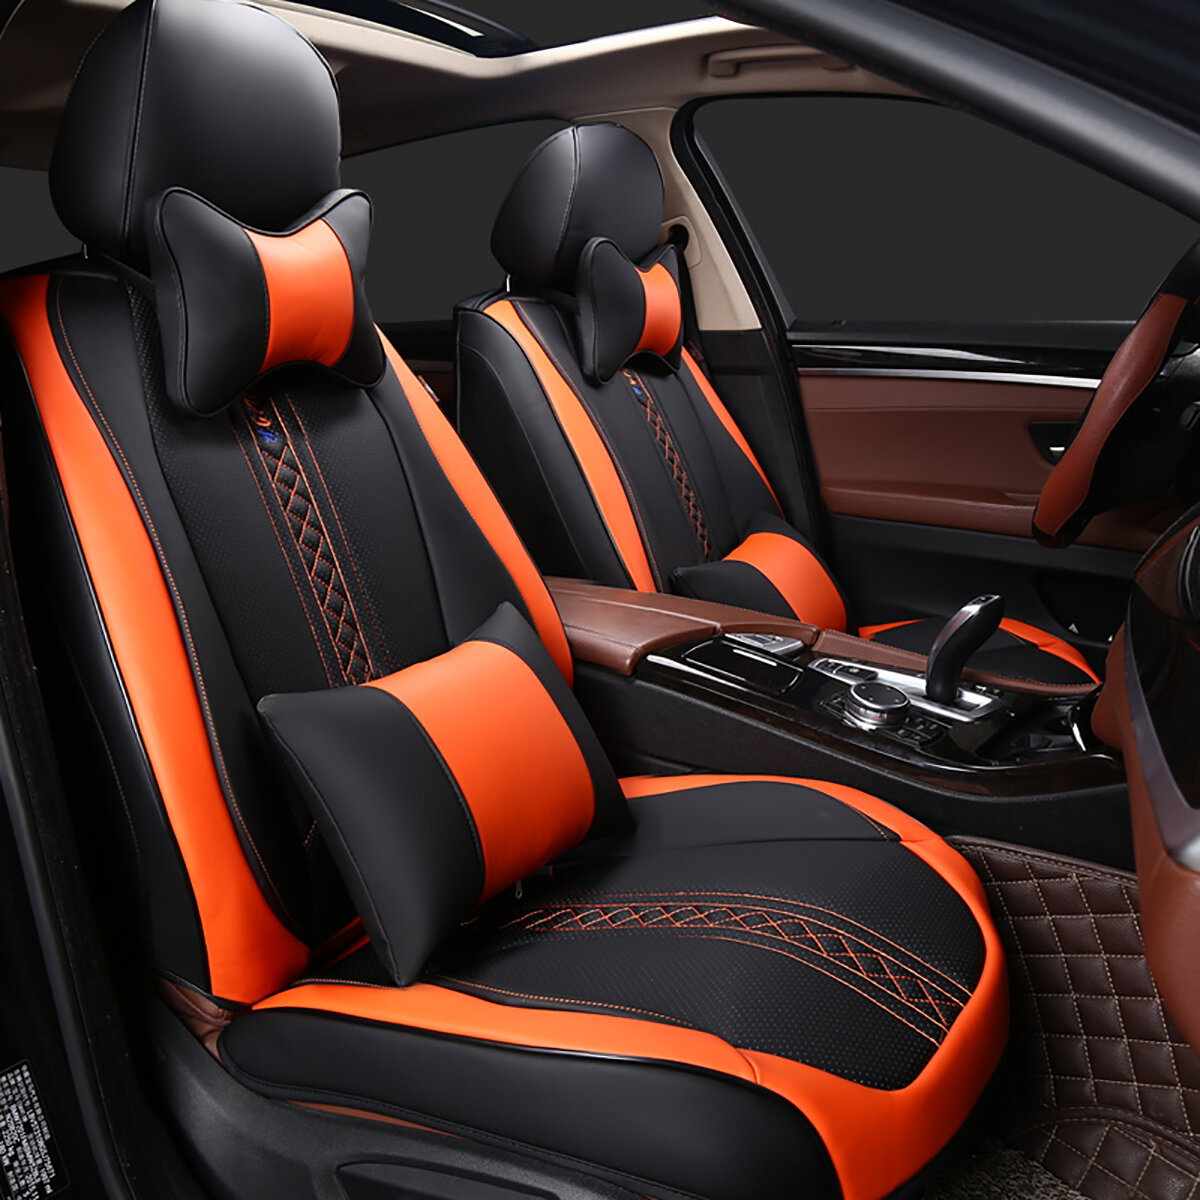 Car Seat Cover Design >> Wear Resistant Leather Universal 5 Seat Car Seat Covers Cushion Set 3d Full Surround Design